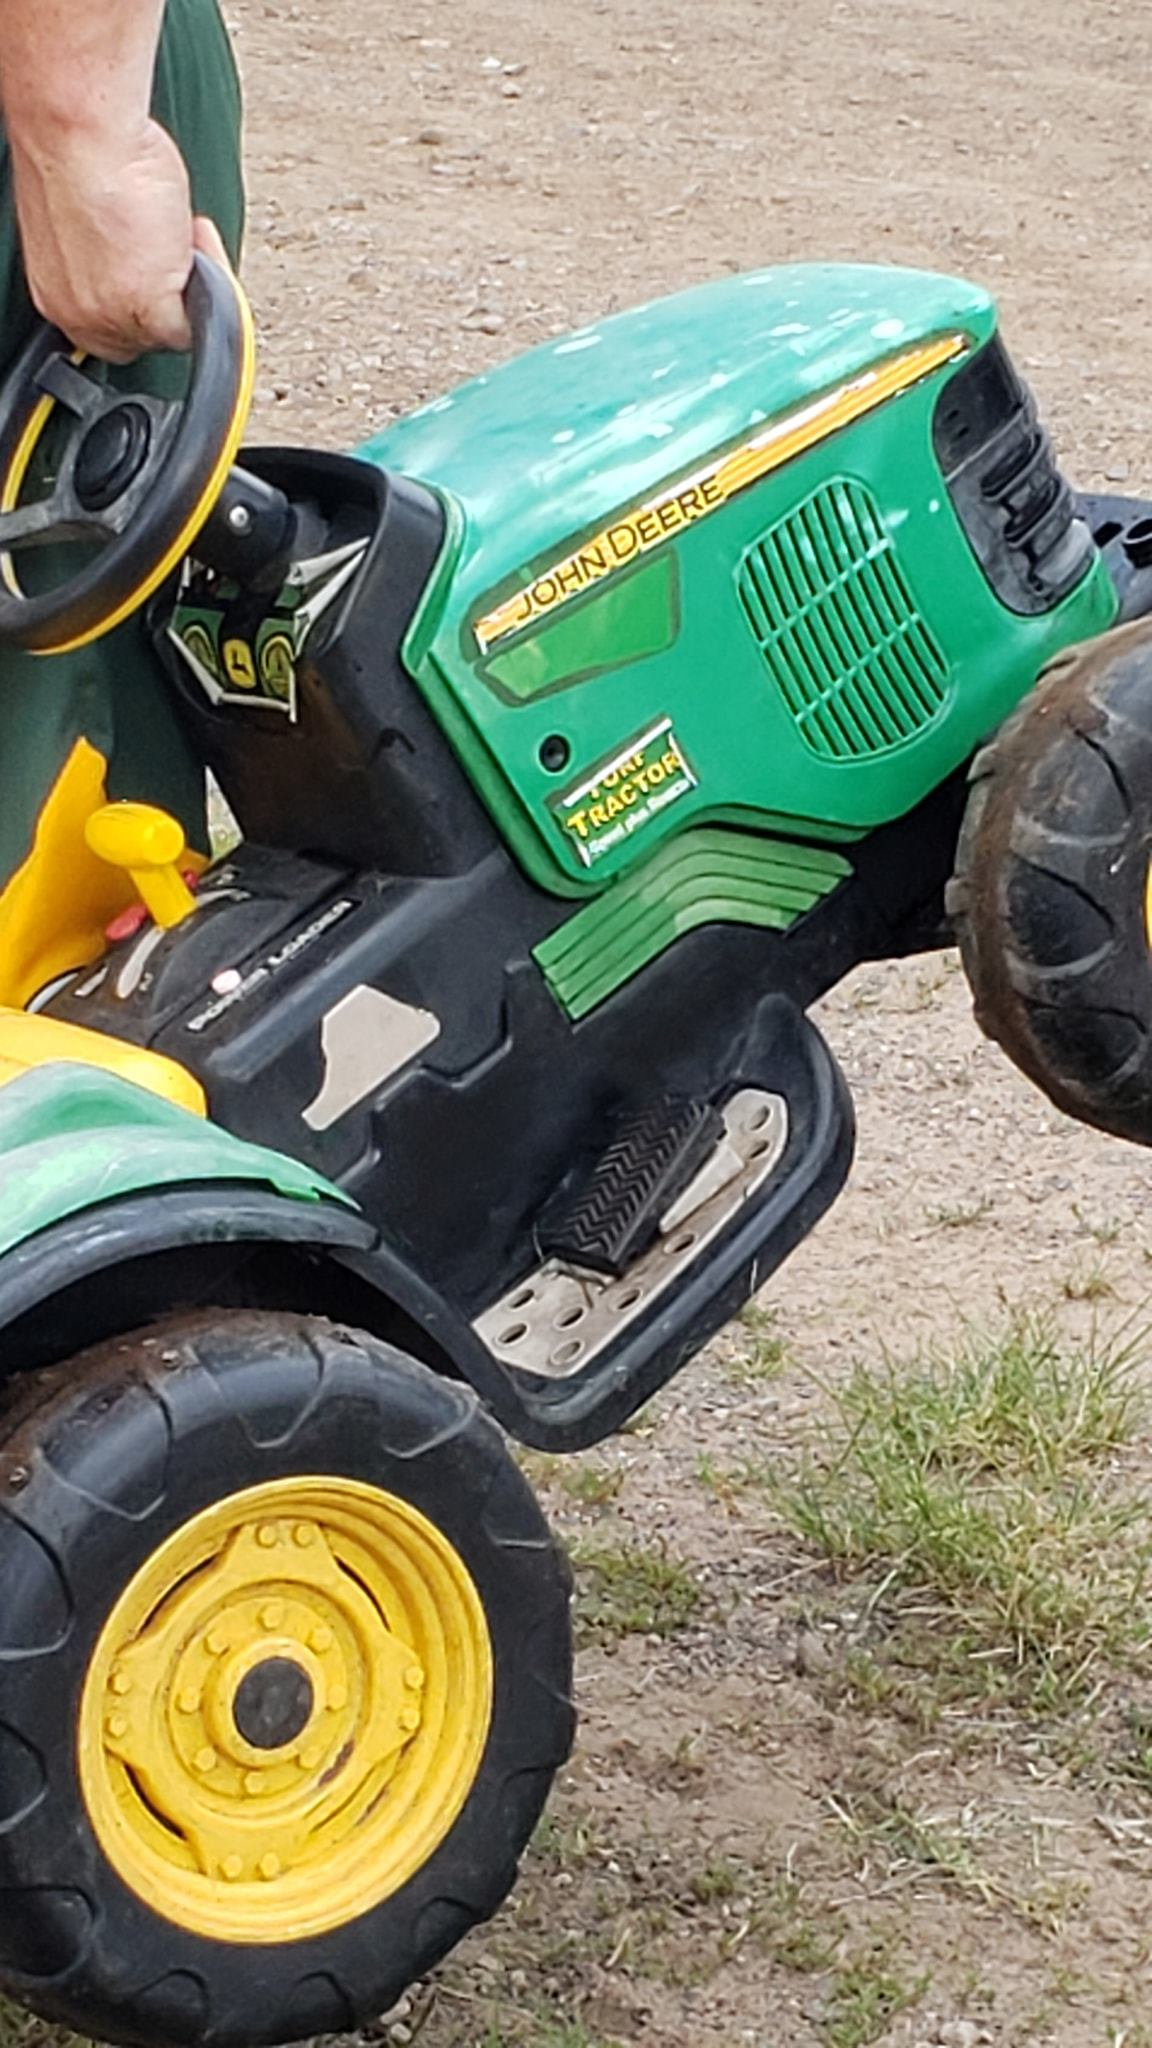 Toddler Drives Battery-Powered Tractor To County Fair